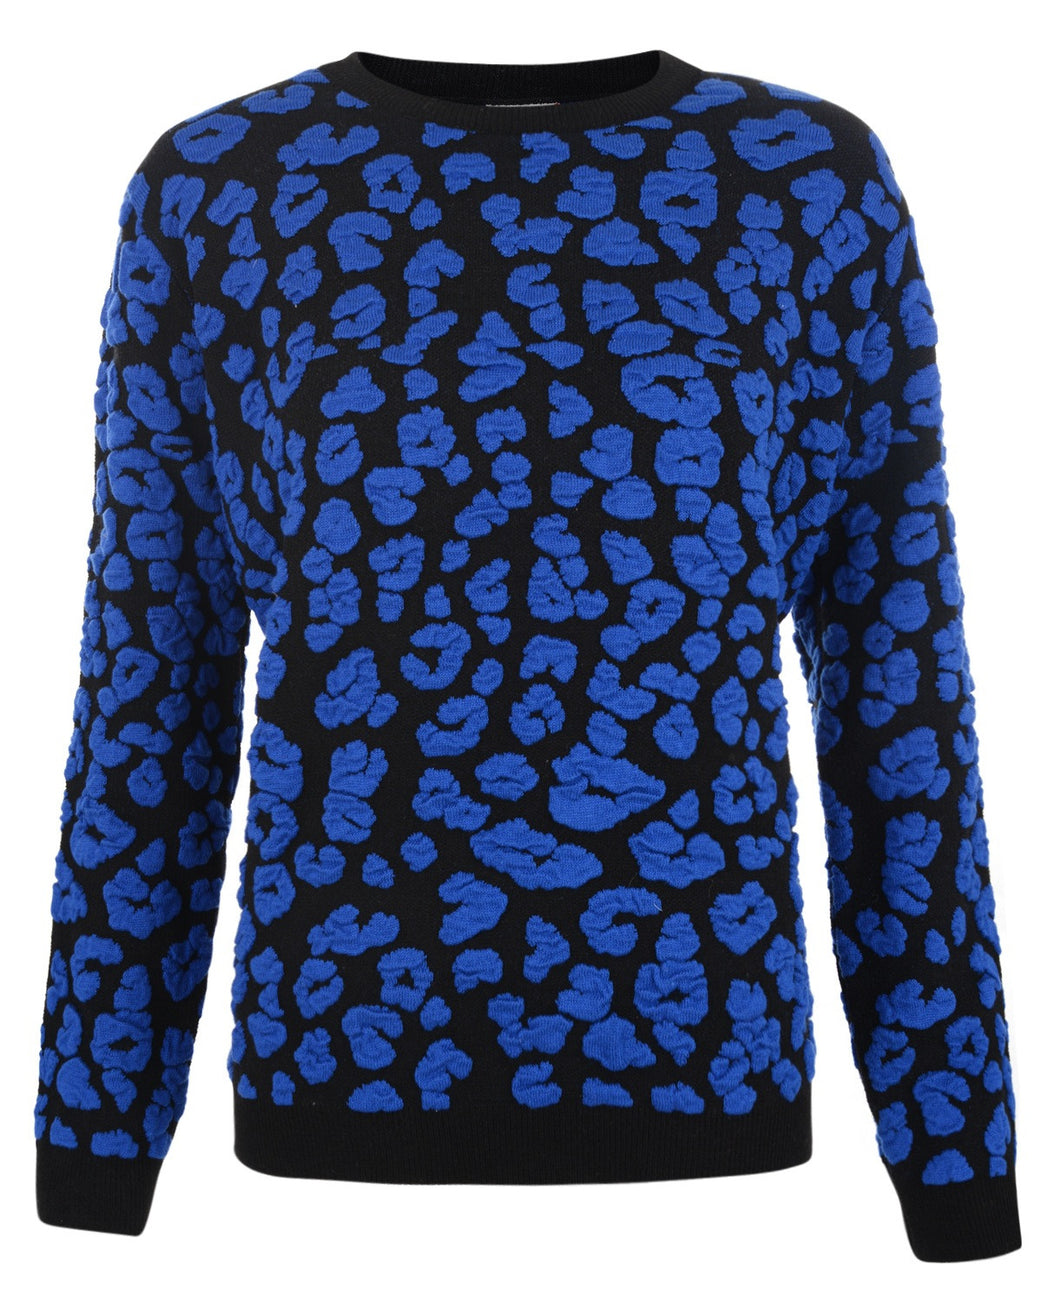 3D PATTERN JUMPER BLUE